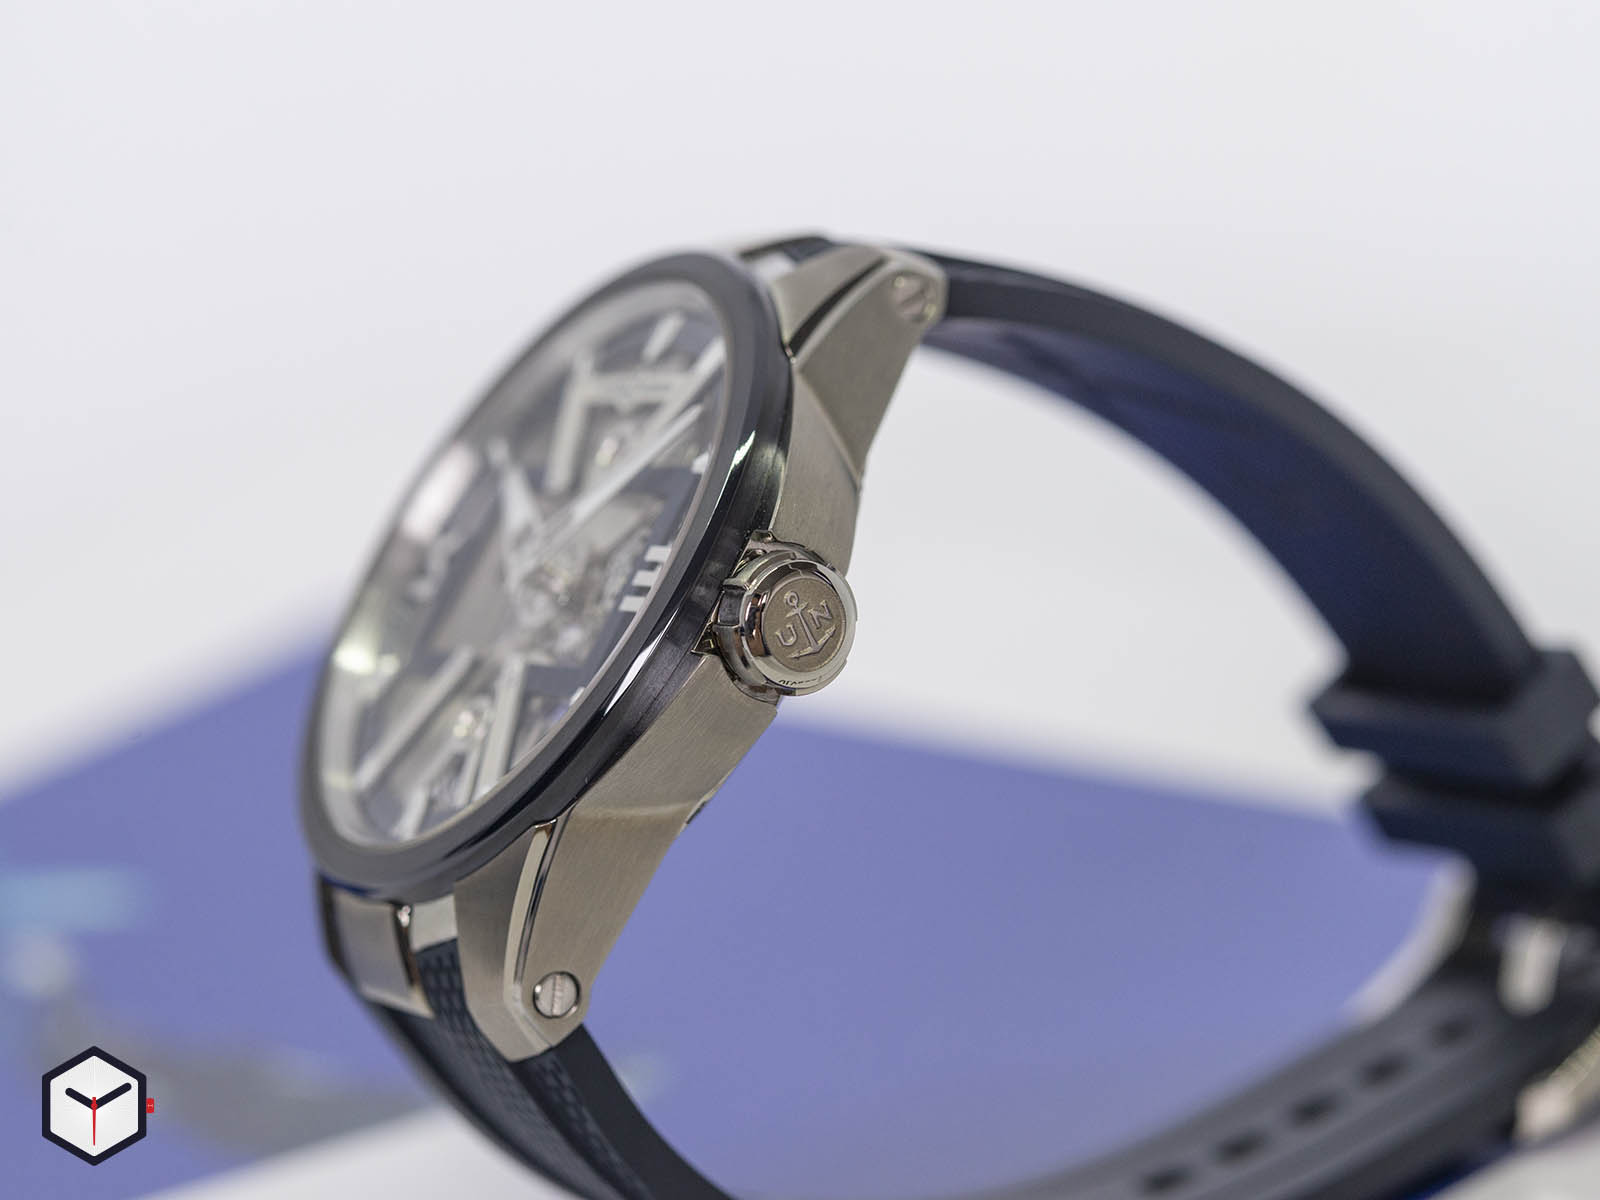 93713-260-3-03-ulysse-nardin-executive-skeleton-x-4.jpg